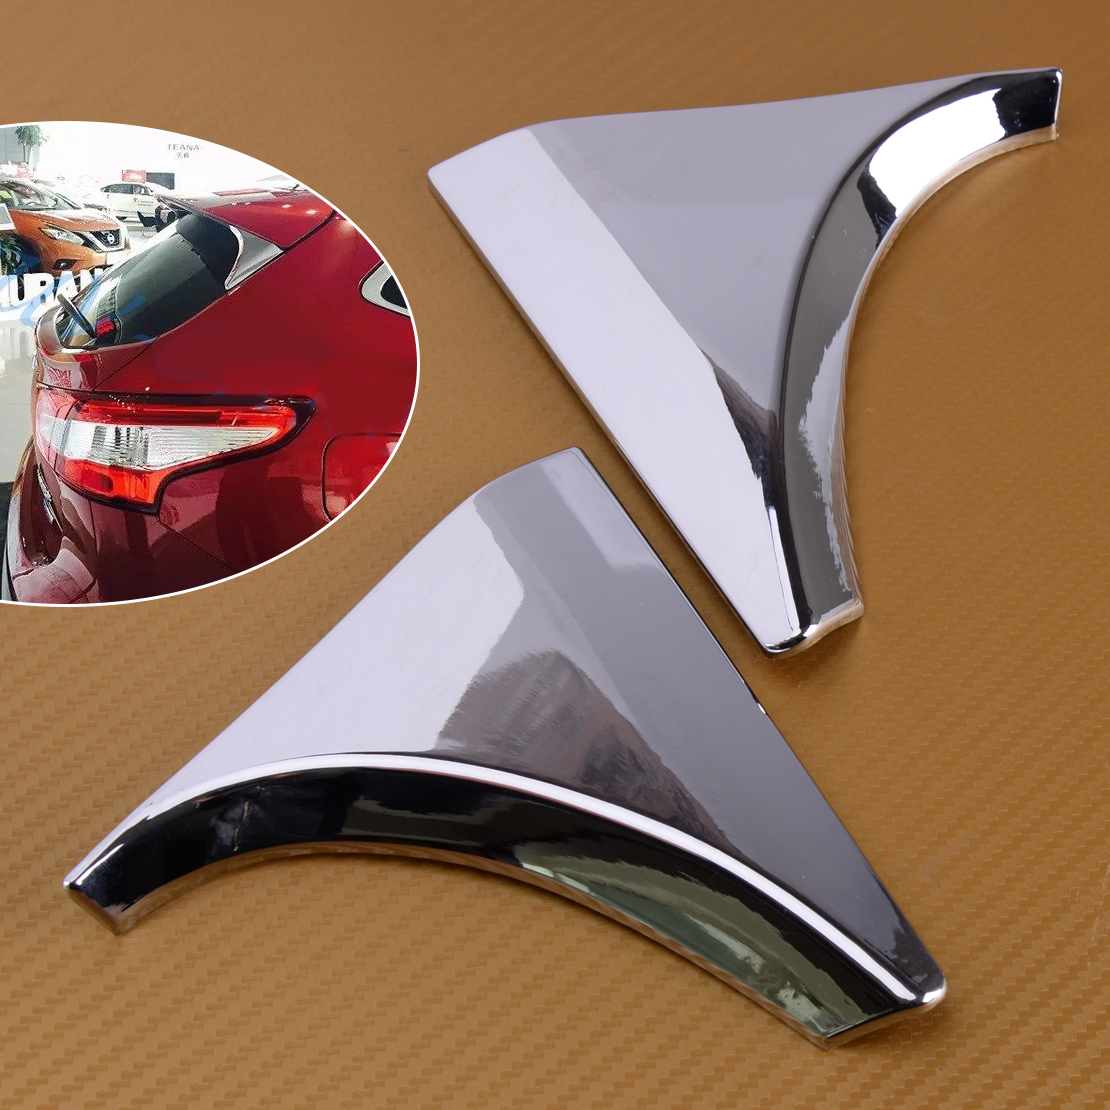 US $9.31 22% OFF|DWCX Car ABS Chrome 2Pcs Rear Window Tailgate Spoiler Trims Cover Fit for Nissan Qashqai J11 2014 2015 2016 2017 2018|Chromium Styling| |  - AliExpress